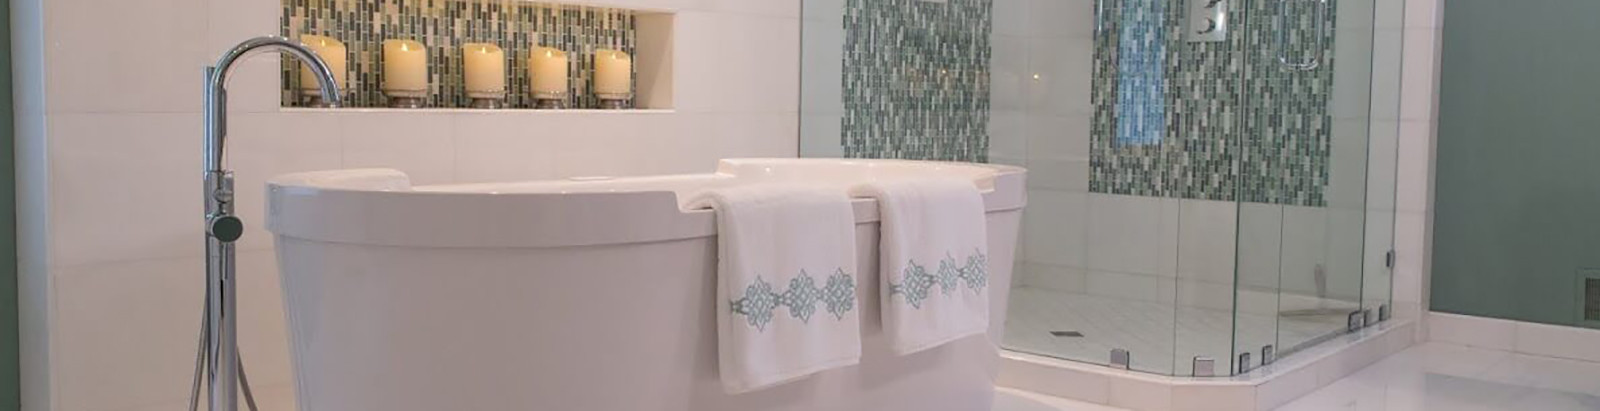 Bathroom Remodeling Rochester, NY, Bathroom Renovation